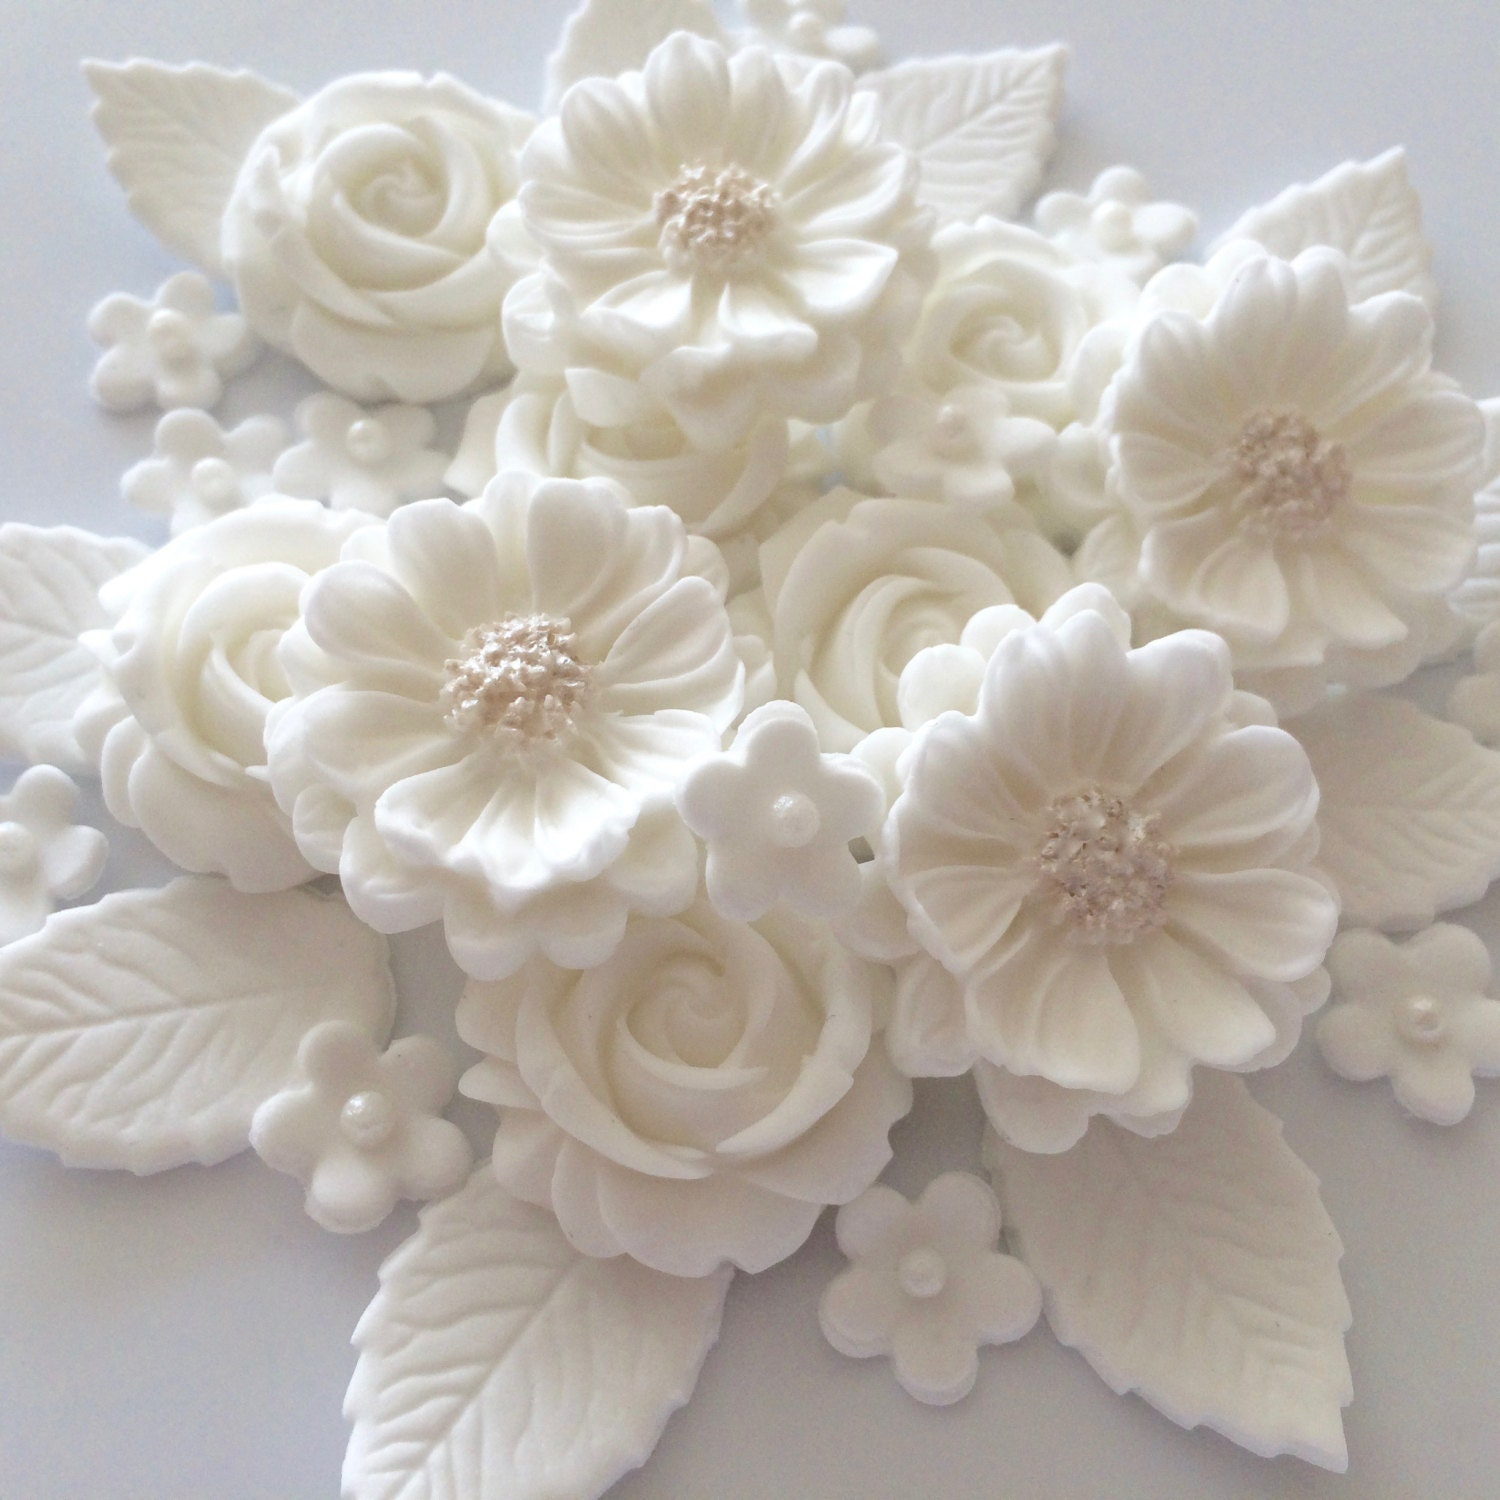 Gumpaste Flowers For Wedding Cakes: WHITE ROSE BOUQUET Edible Sugar Paste Flowers Wedding Cake